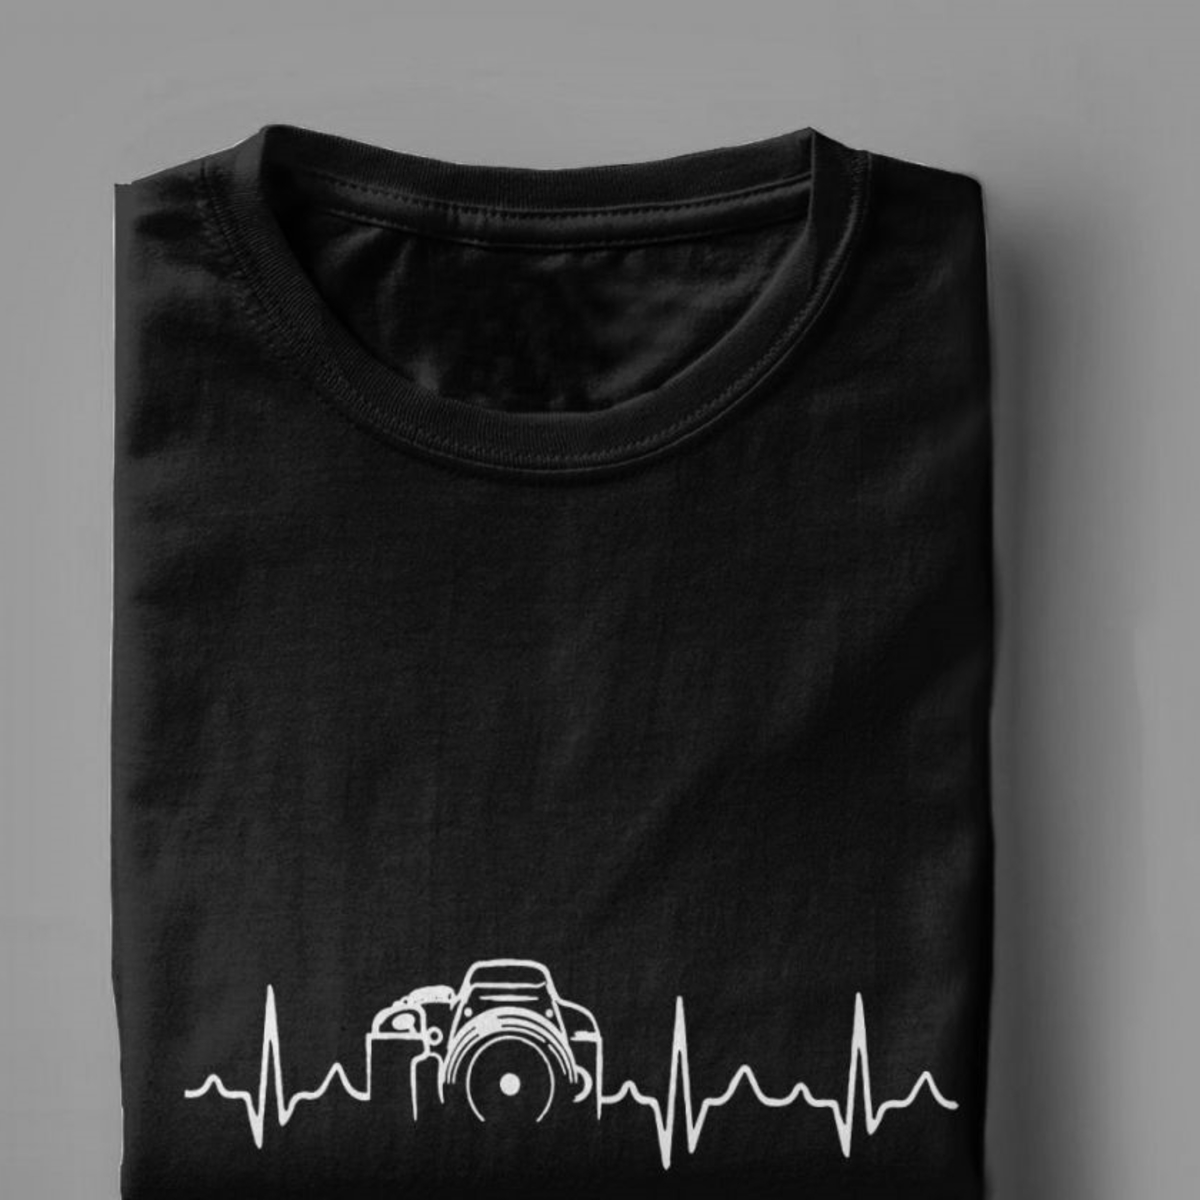 Heartbeat Of Camera Tshirt Men Cotton Casual Tee Shirts Crew Neck Photographer Tee Shirt Tops Graphic Printed